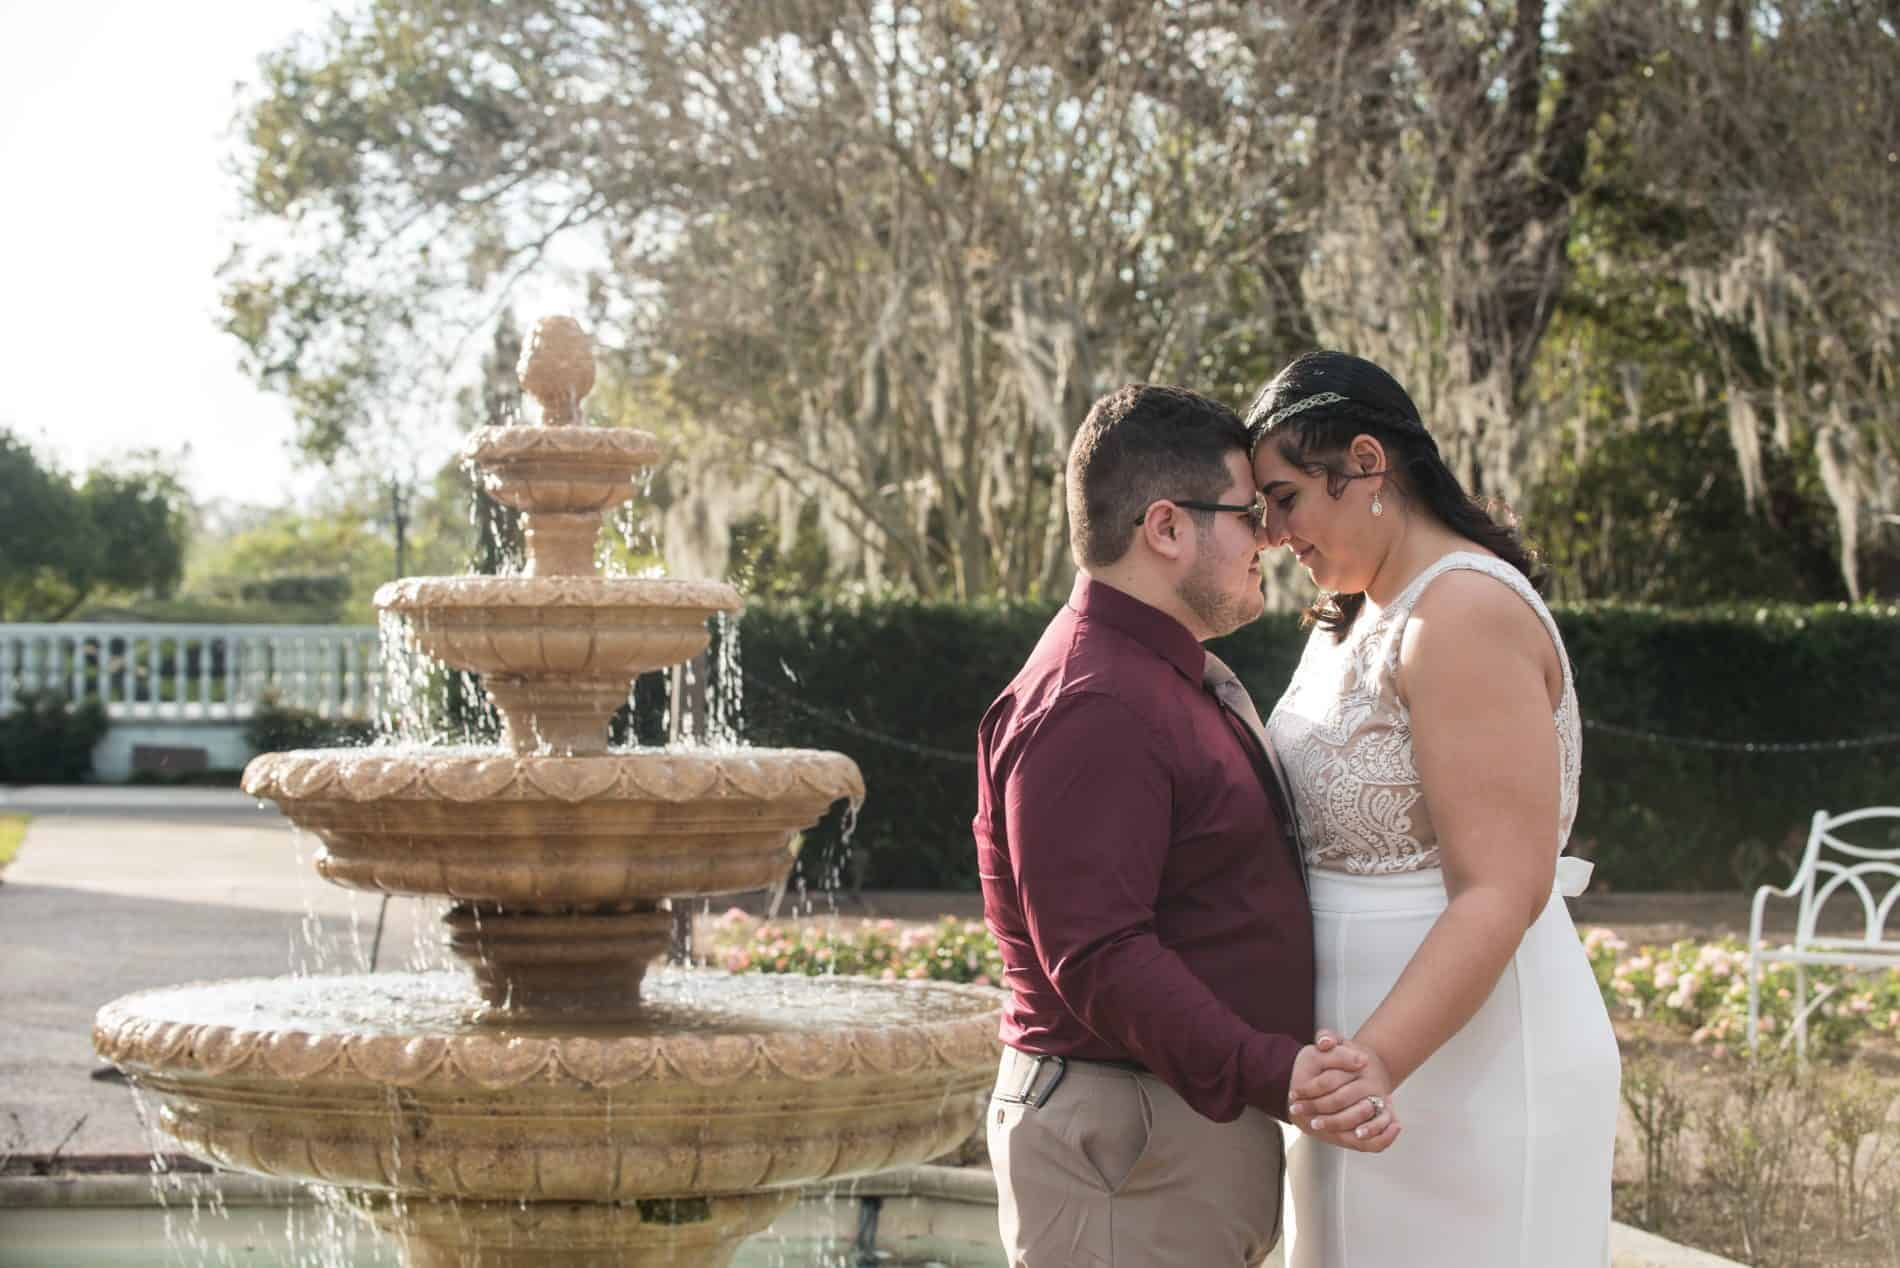 Finding a Photographer for your Wedding